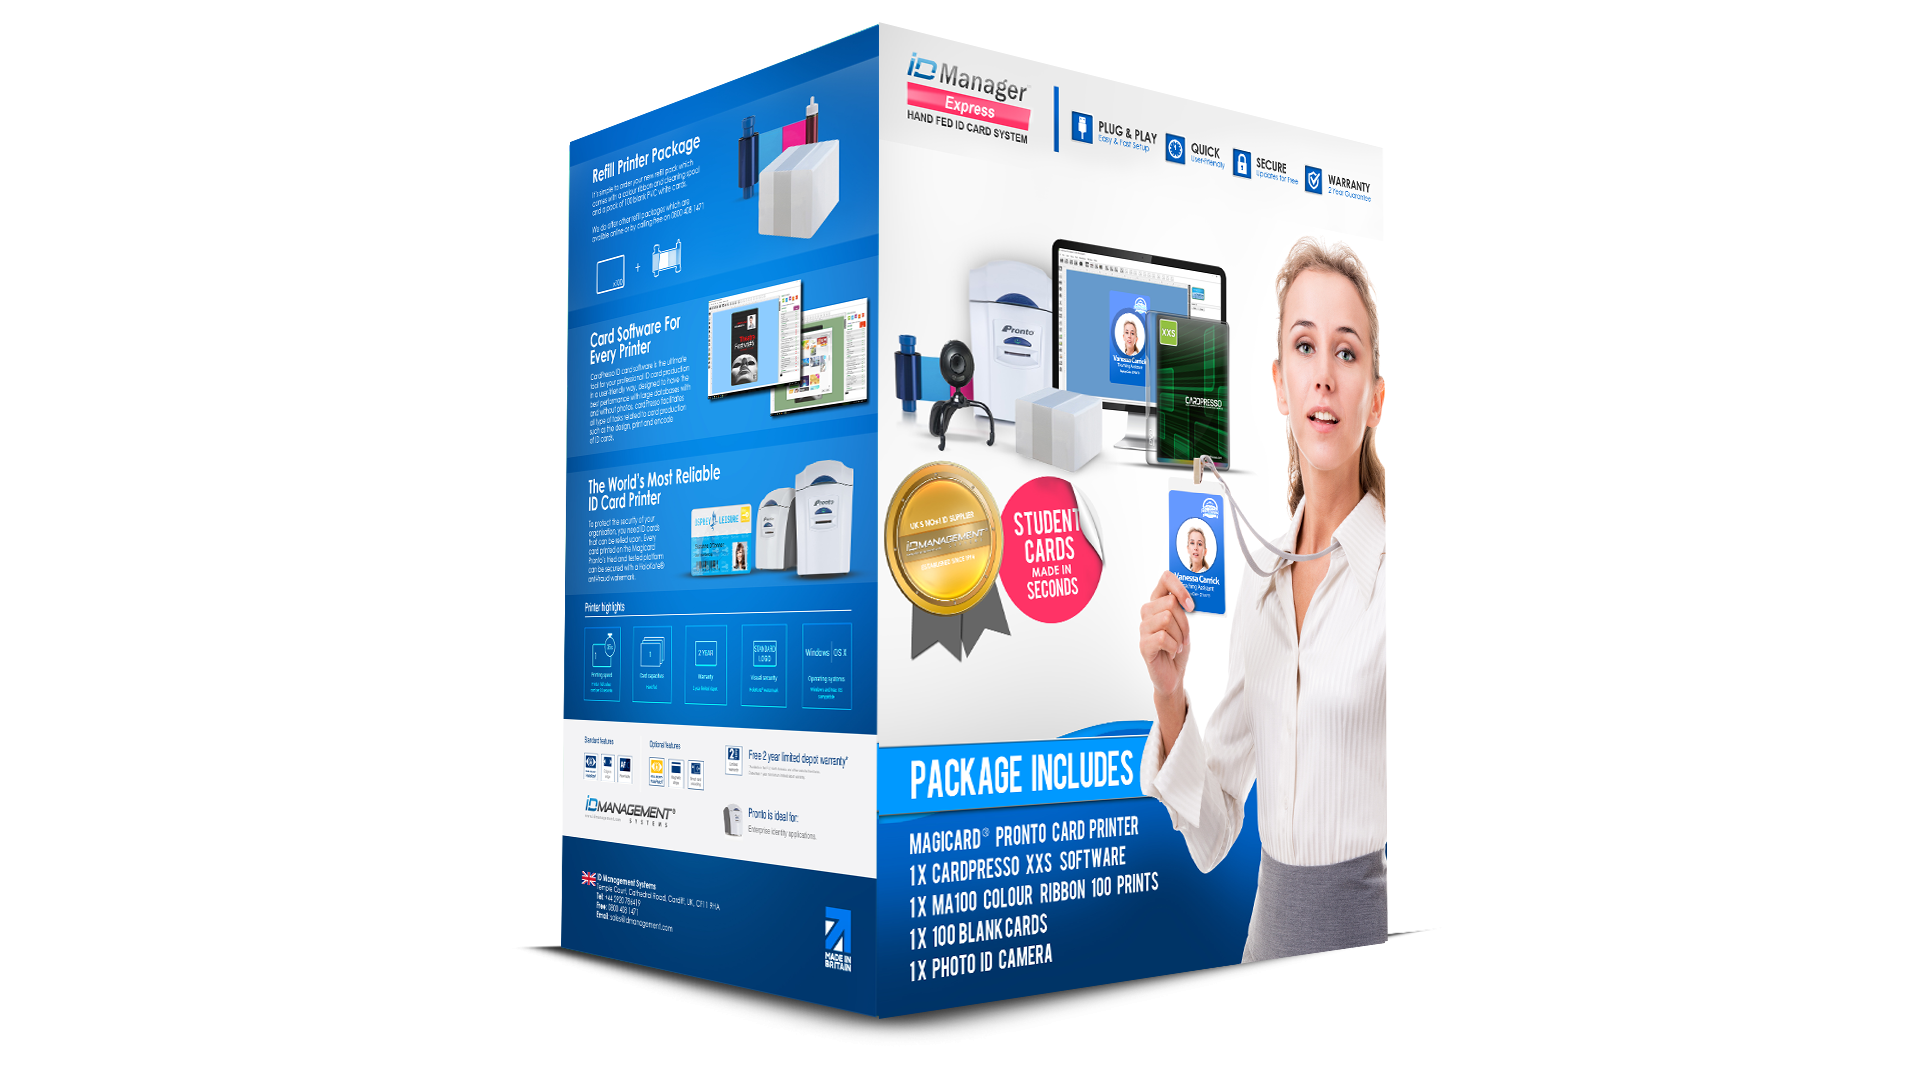 ID Manager Student ID Card System - Magicard Pronto